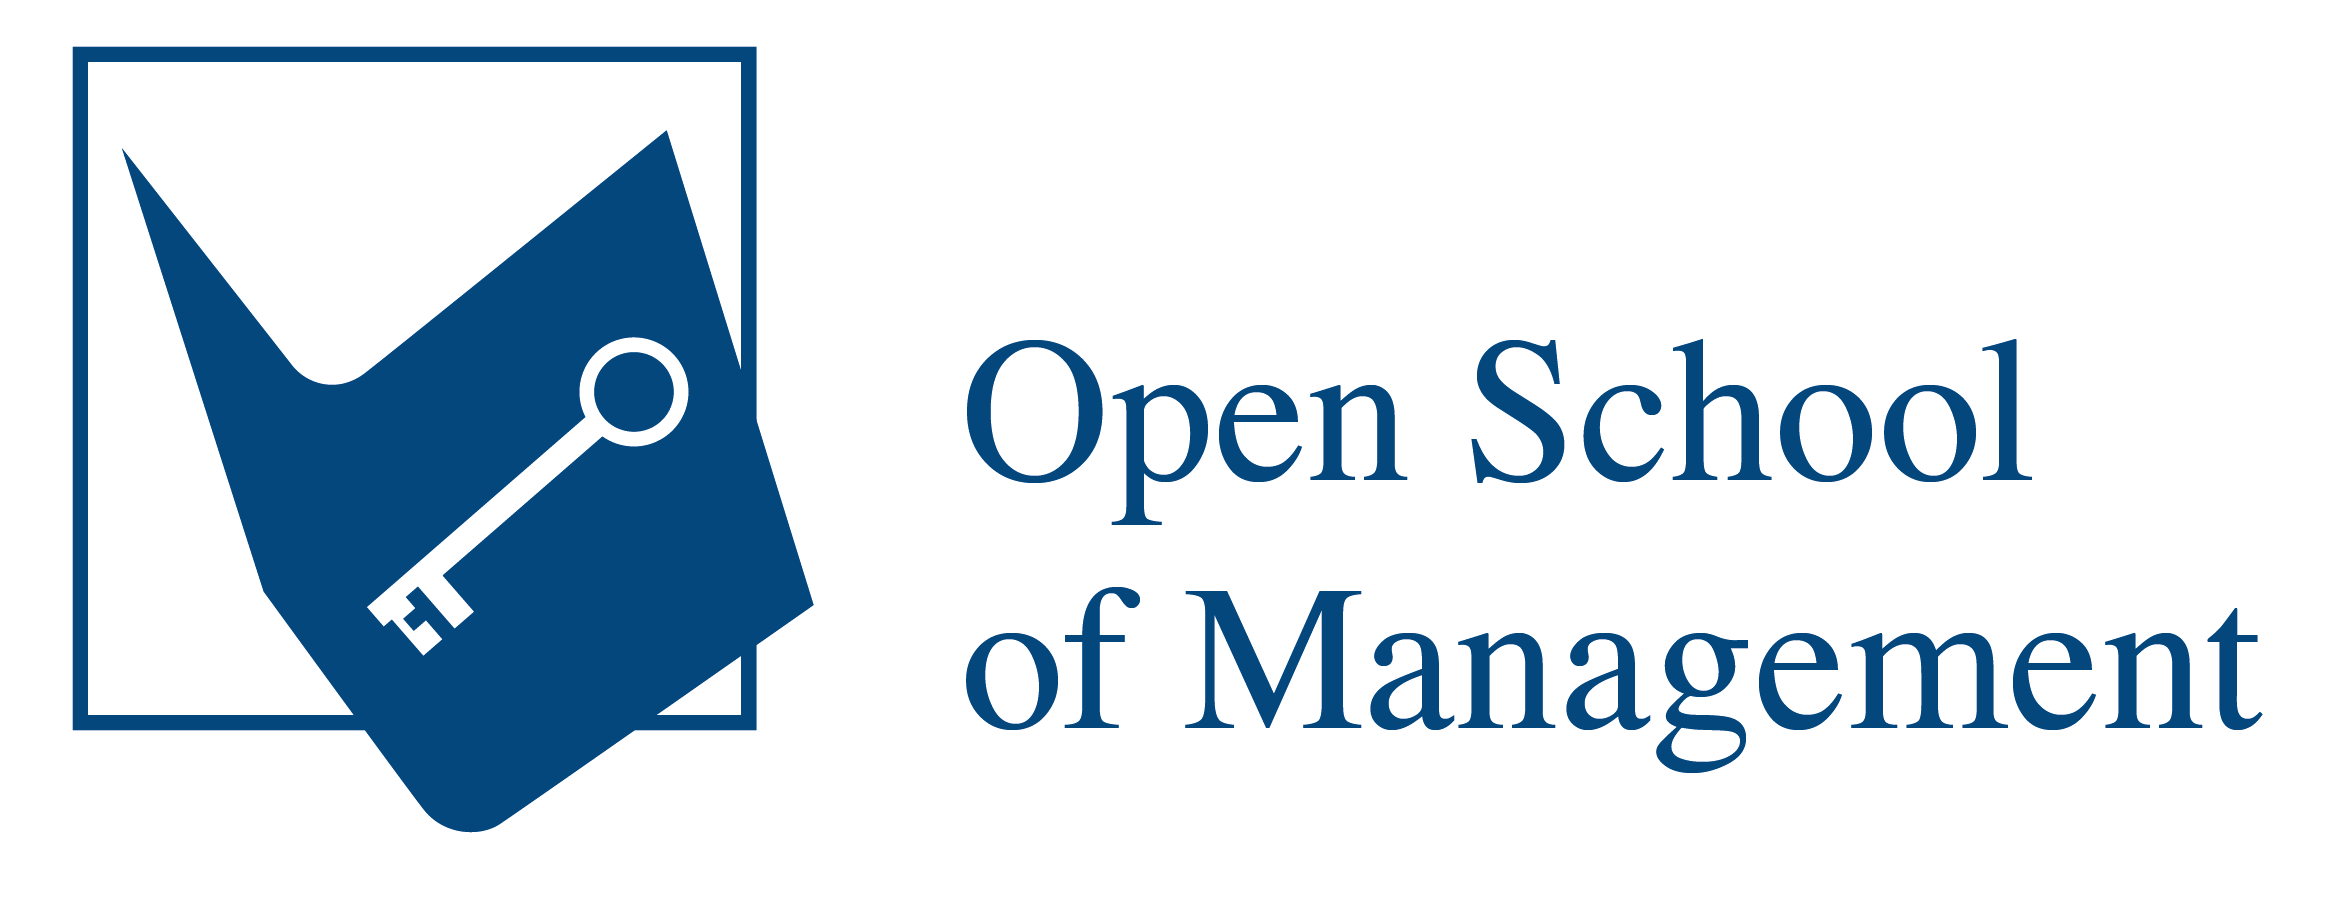 open-school-of-management